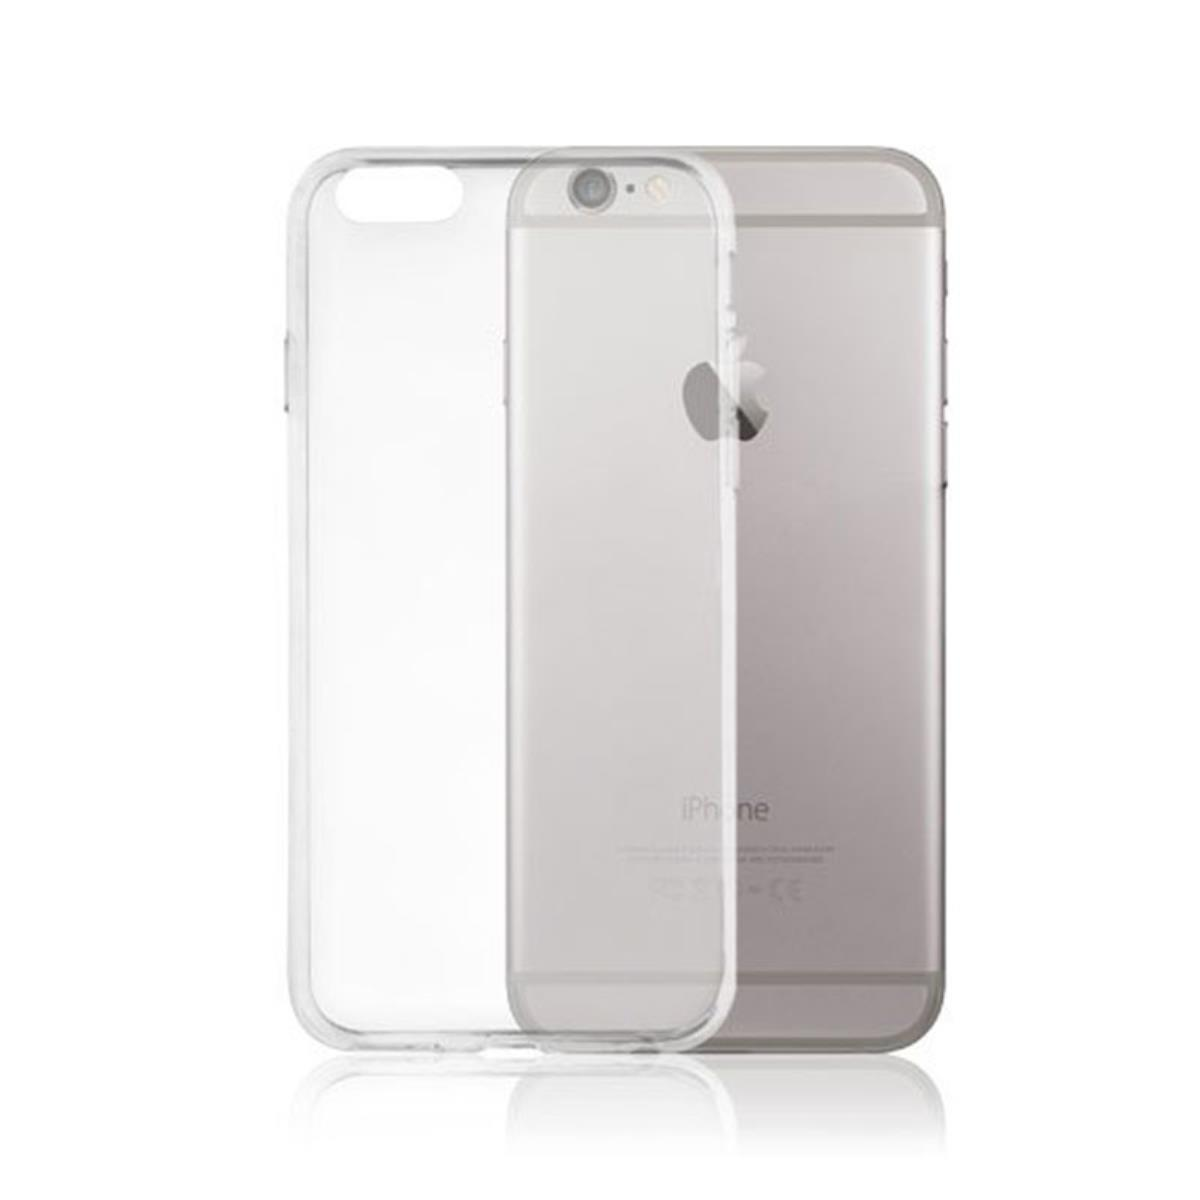 new arrival e72df dc68f Okkes Air Silicone Case iPhone 6 Transparent